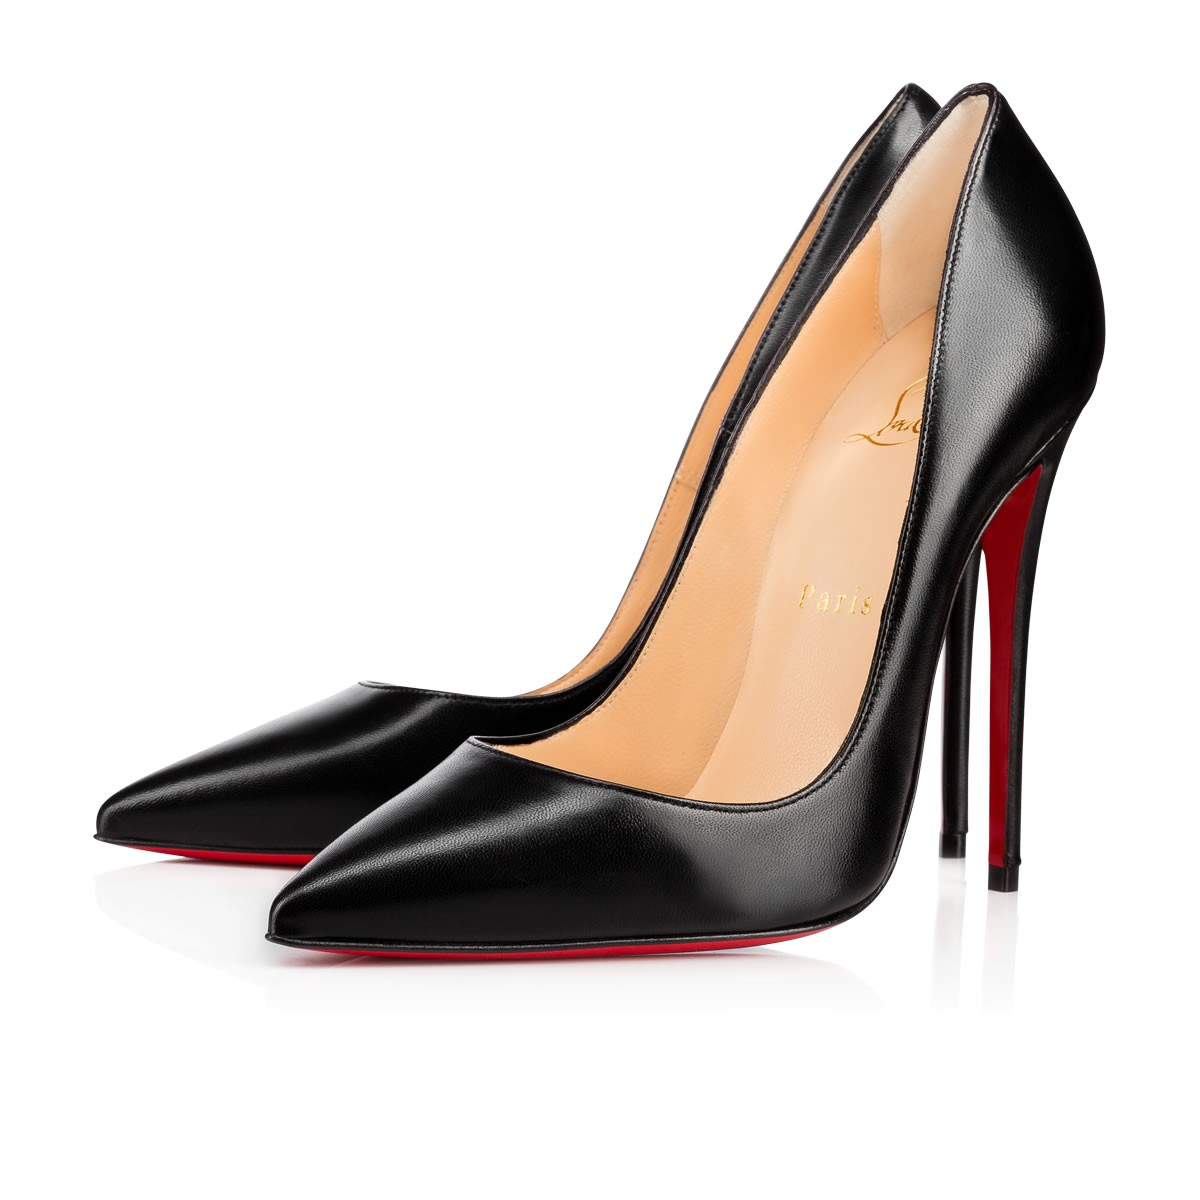 la plus grande boutique louboutin a paris